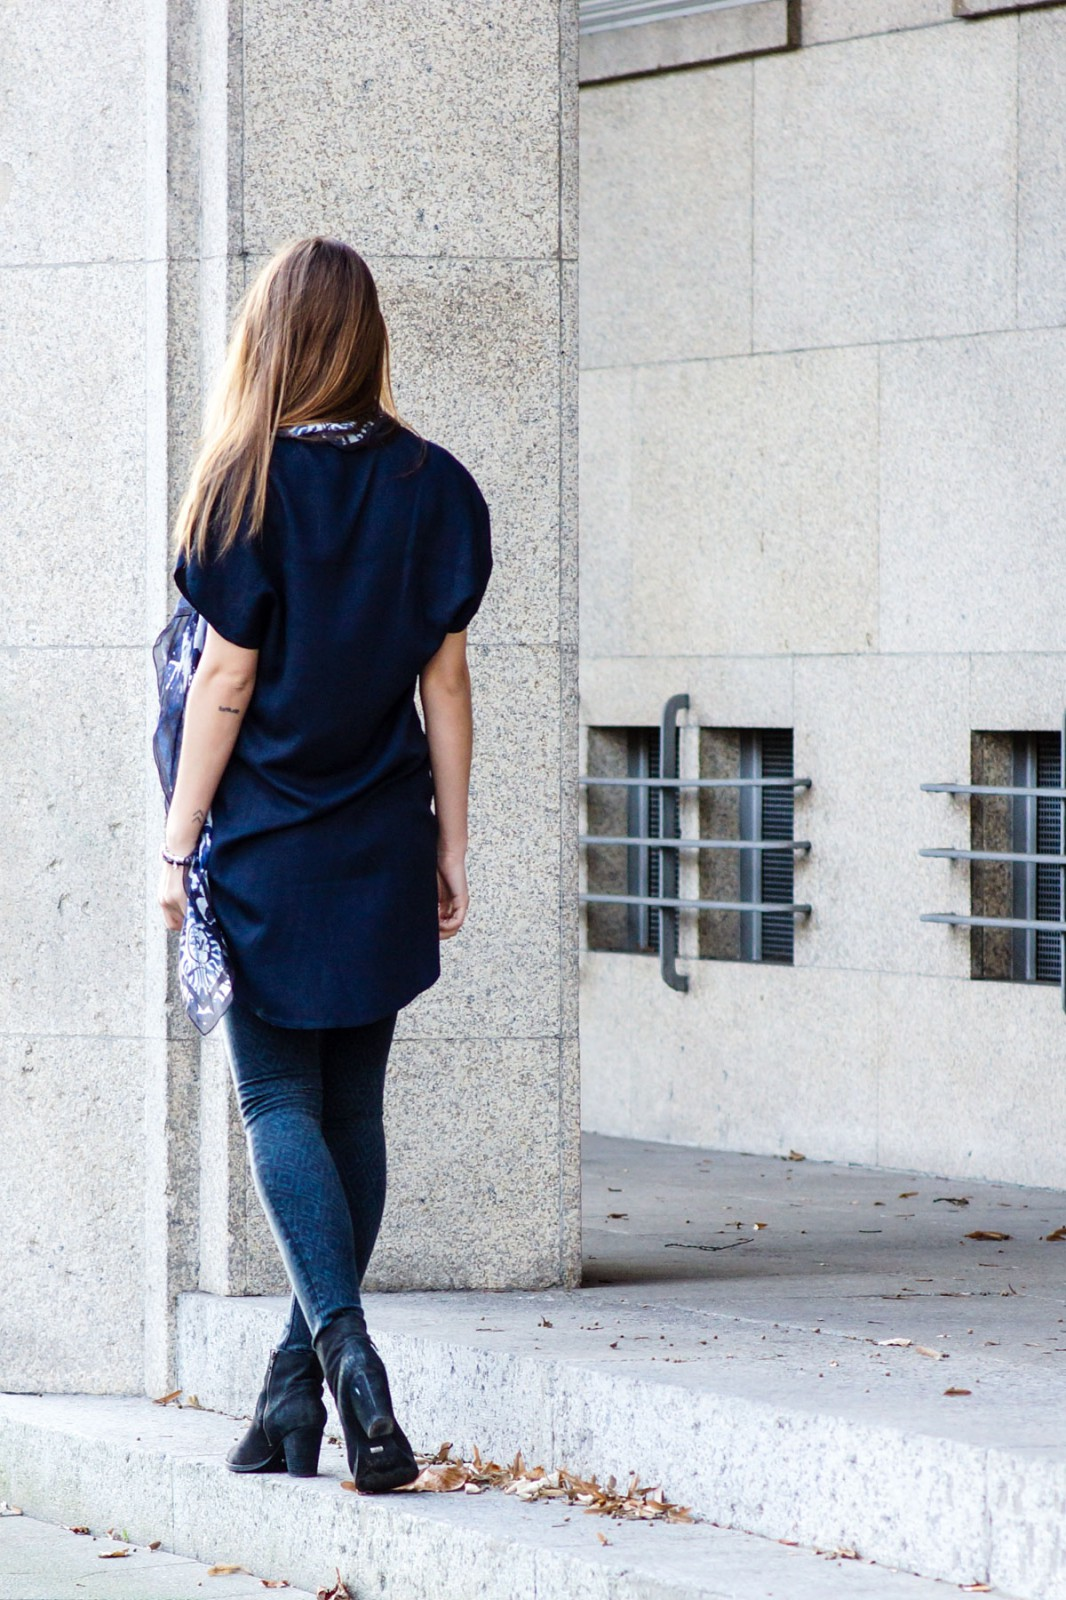 Kleid über Jeans Outfit